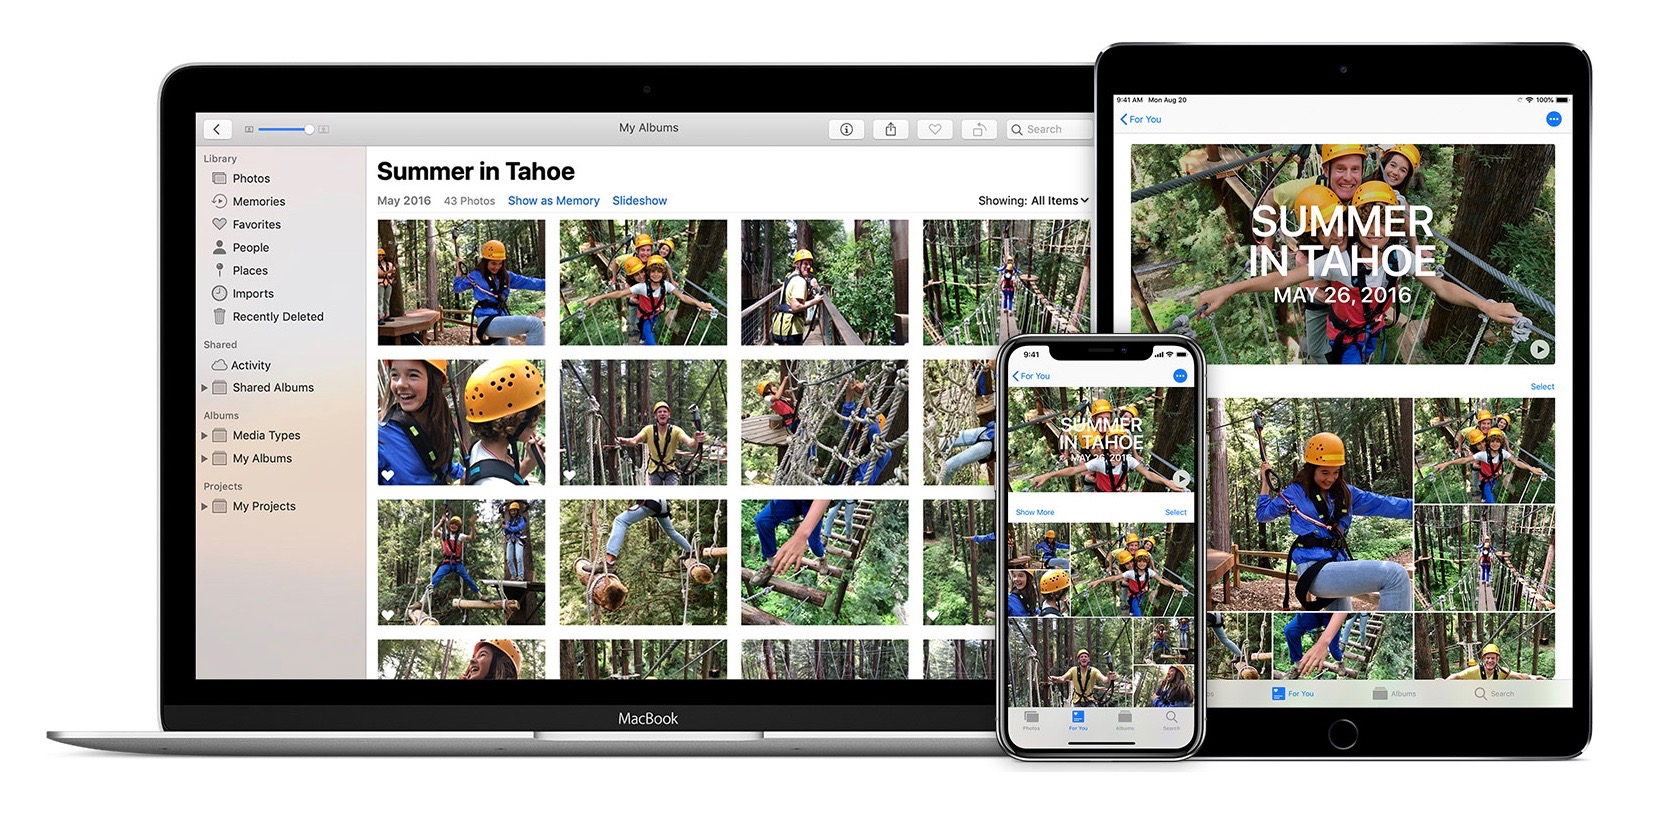 How to upload photos into iCloud Photos from iPhone, iPad, Mac, and icloud․com